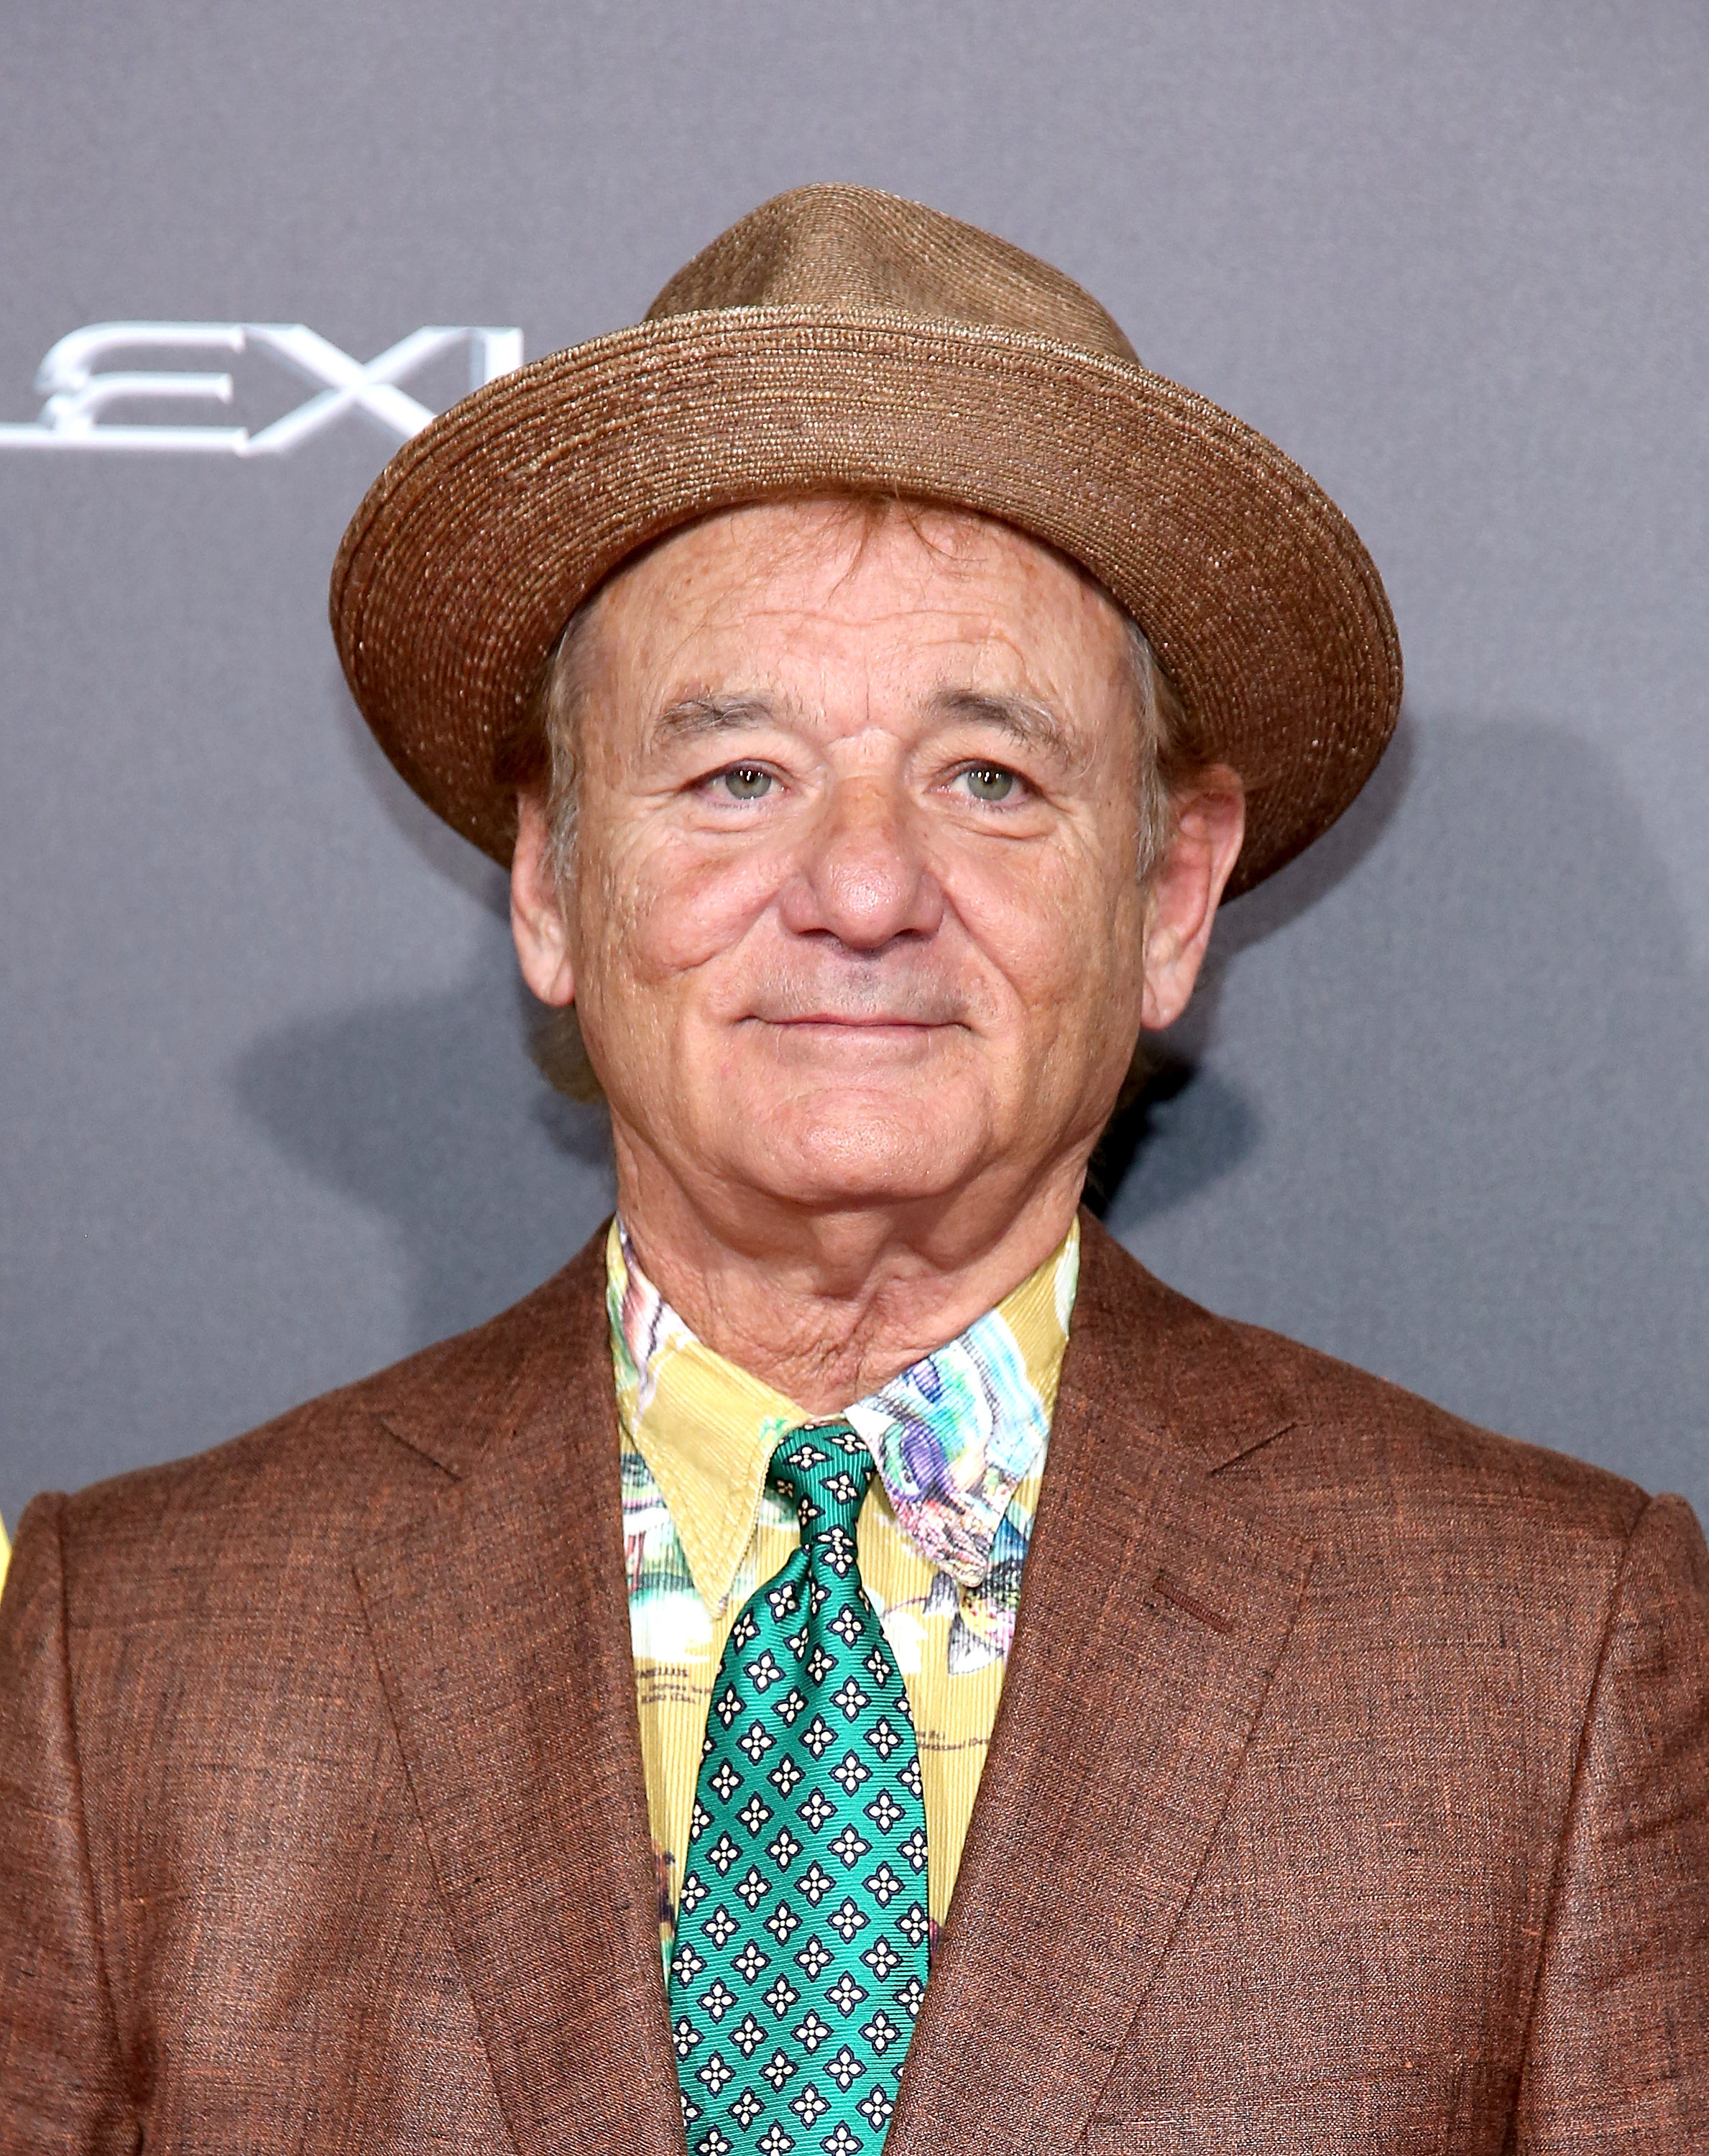 Actor Bill Murray attends the premiere of ST. VINCENT